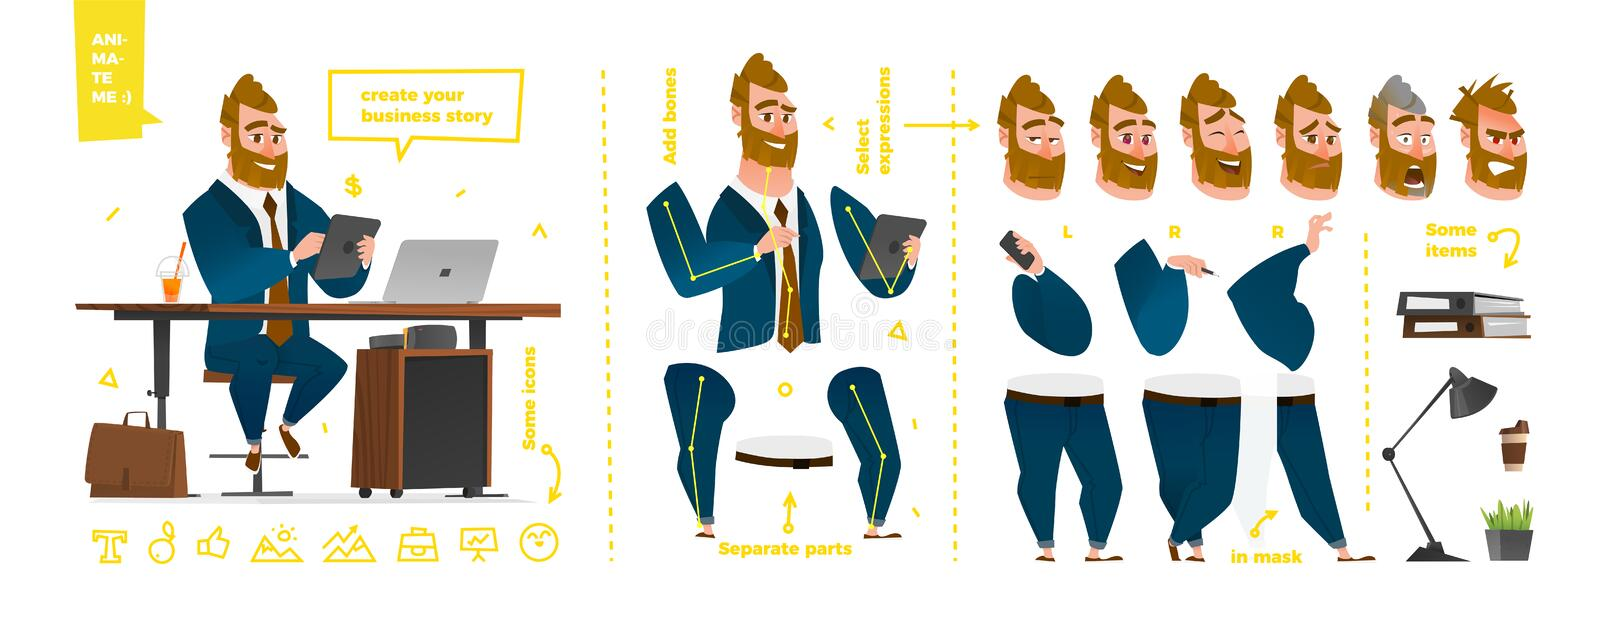 Stylized characters set for animation. stock illustration